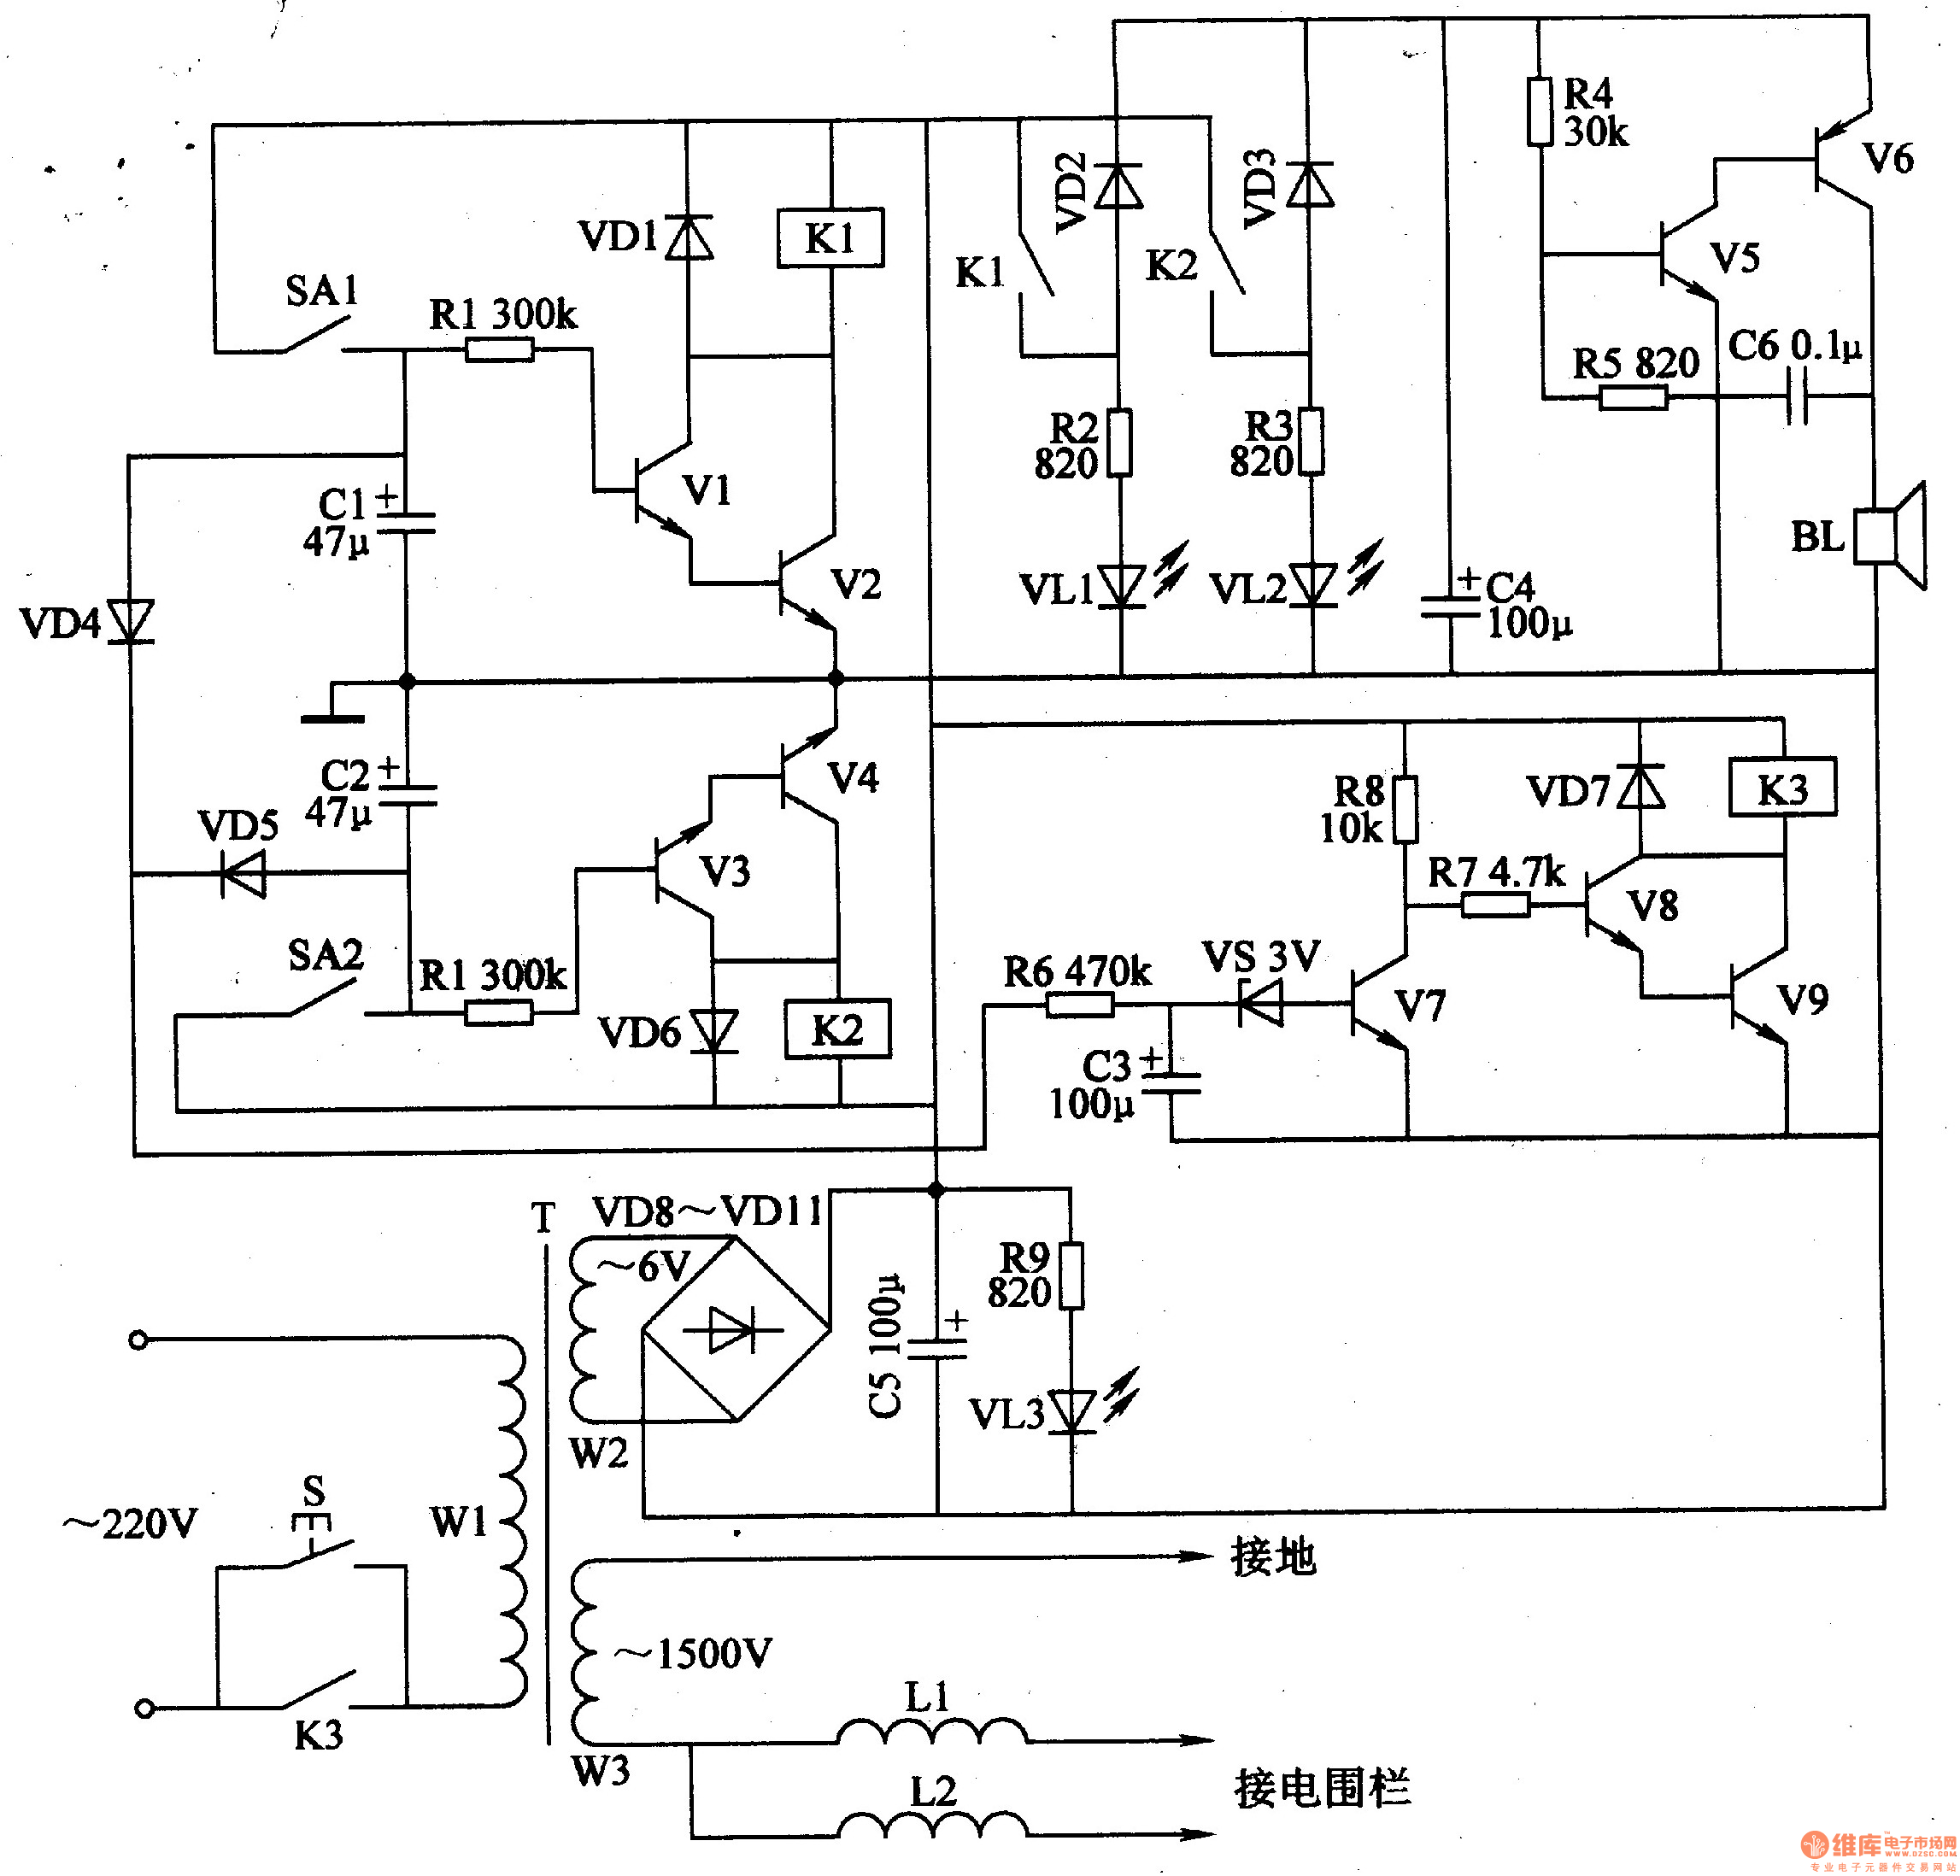 New Circuits Page 67 2n2907 In The Reverse Unit Project Schematic Circuit Diagram And Datasheet Electric Fence Control 5